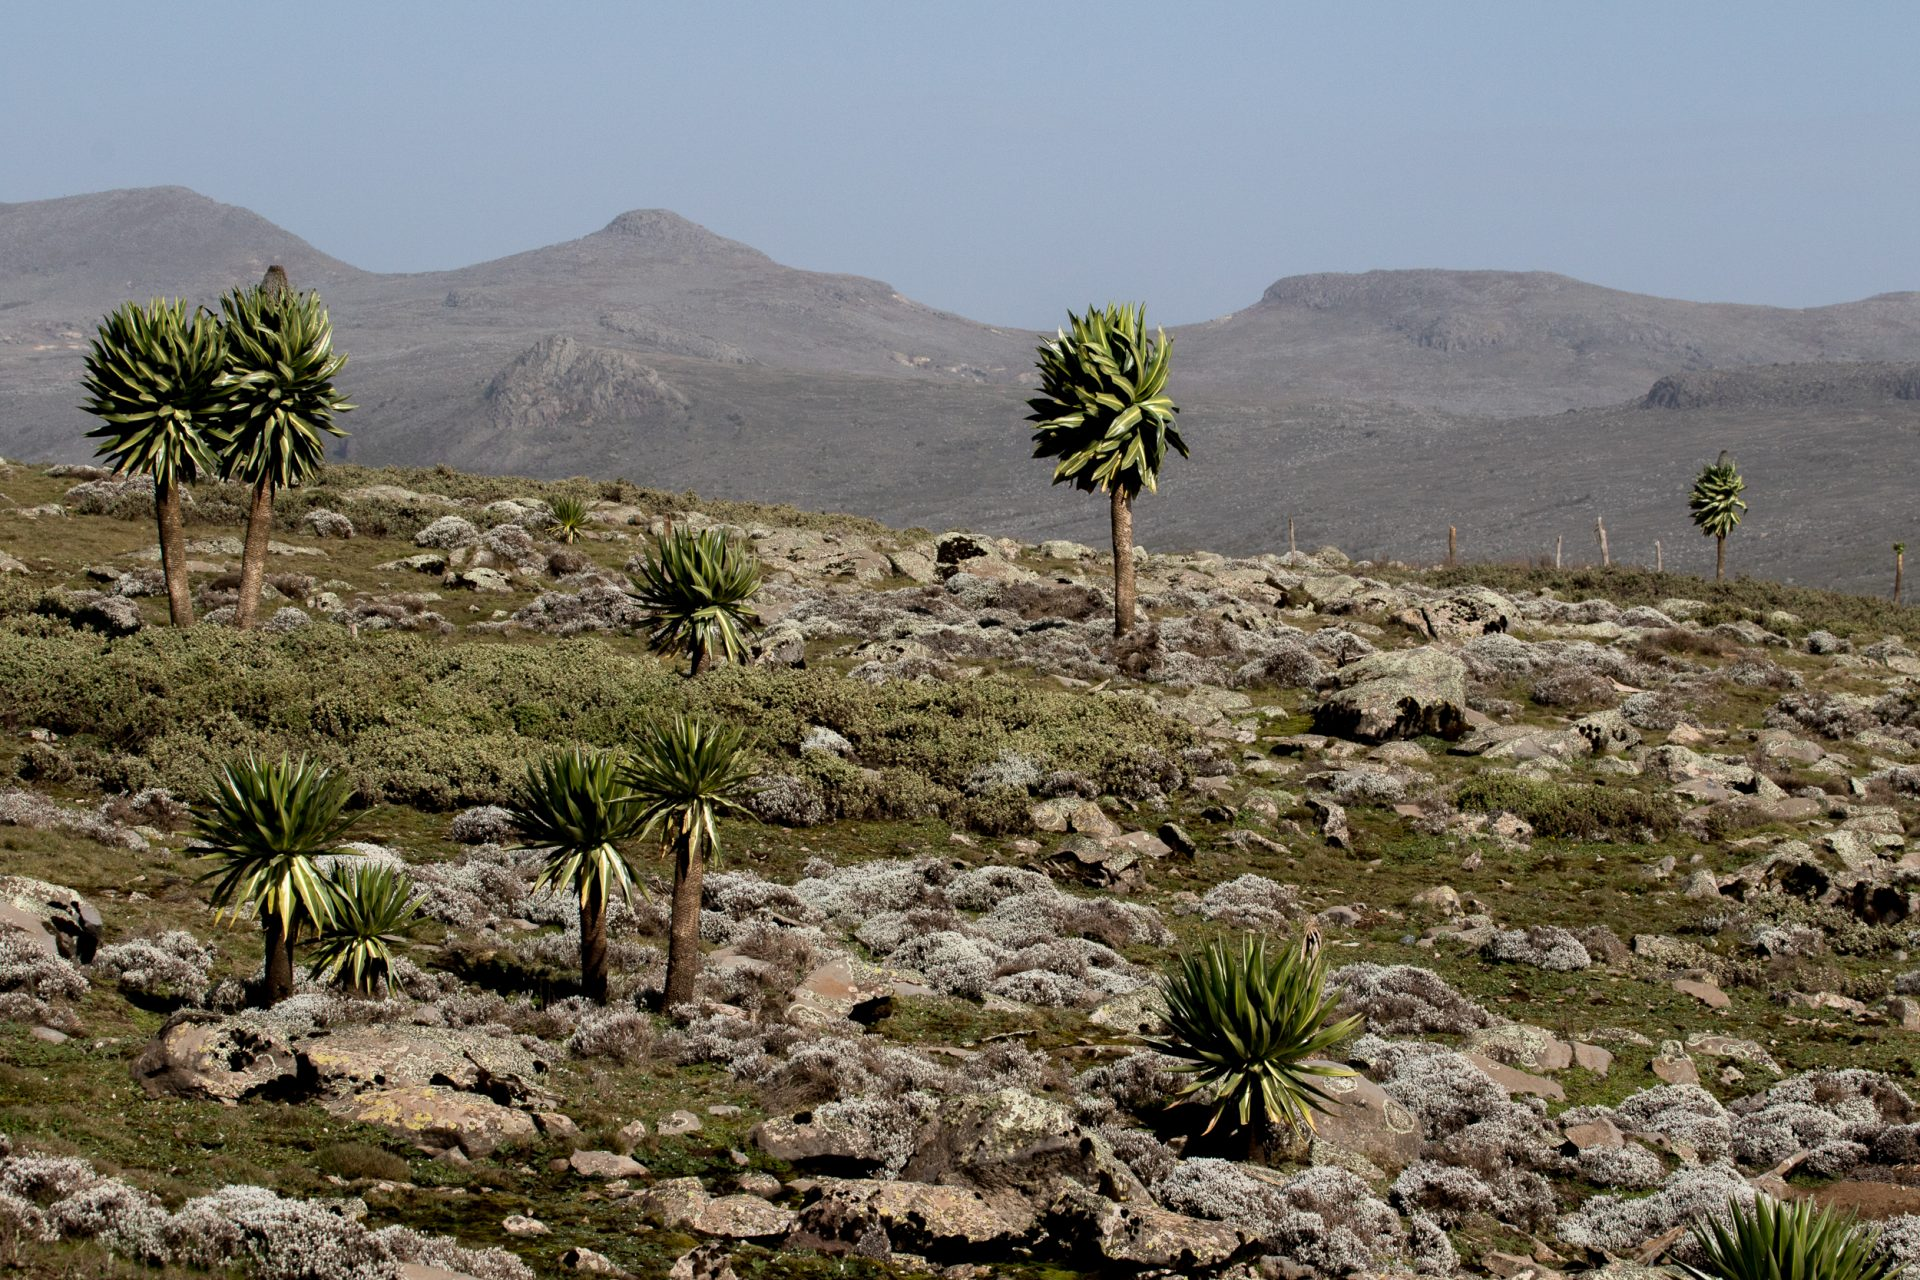 Giant Lobelias trees on the Sanetti Plateau in Bale National Park at 4,000 m elevation.